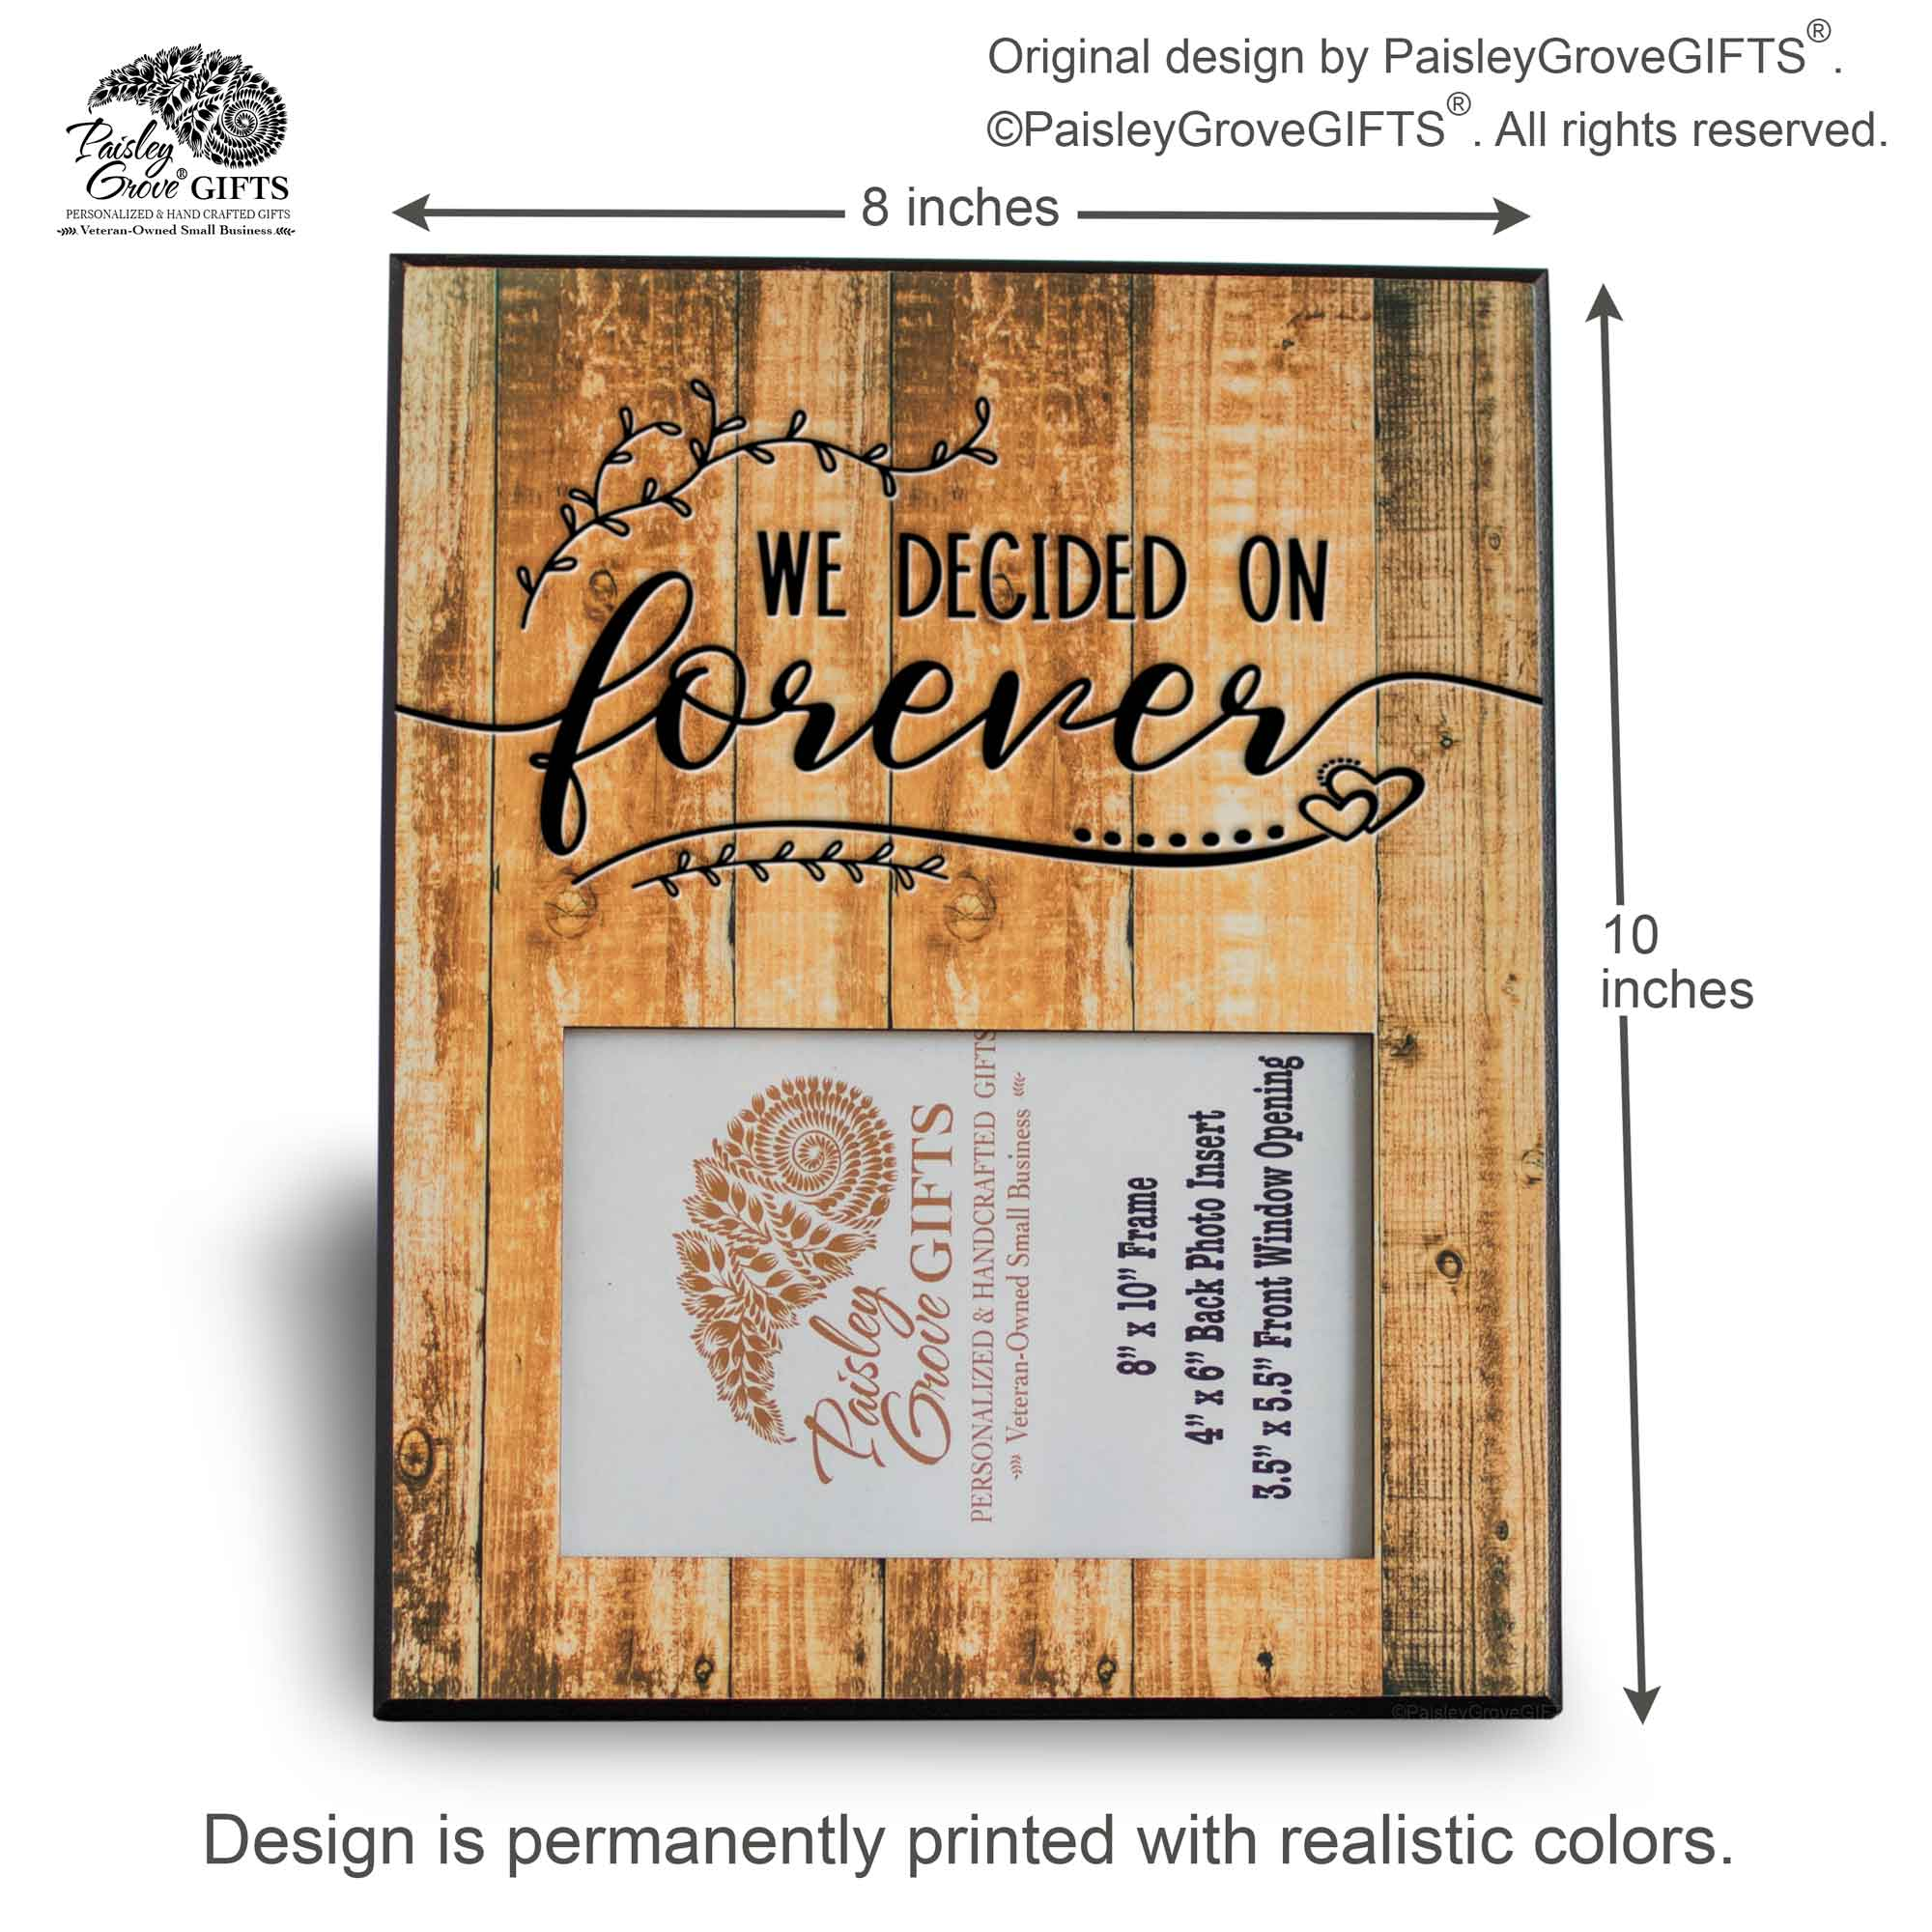 CopyrightPaisleyGroveGIFTS S201c1 Measurements for Rustic Just Engaged and Wedding Frame for Her